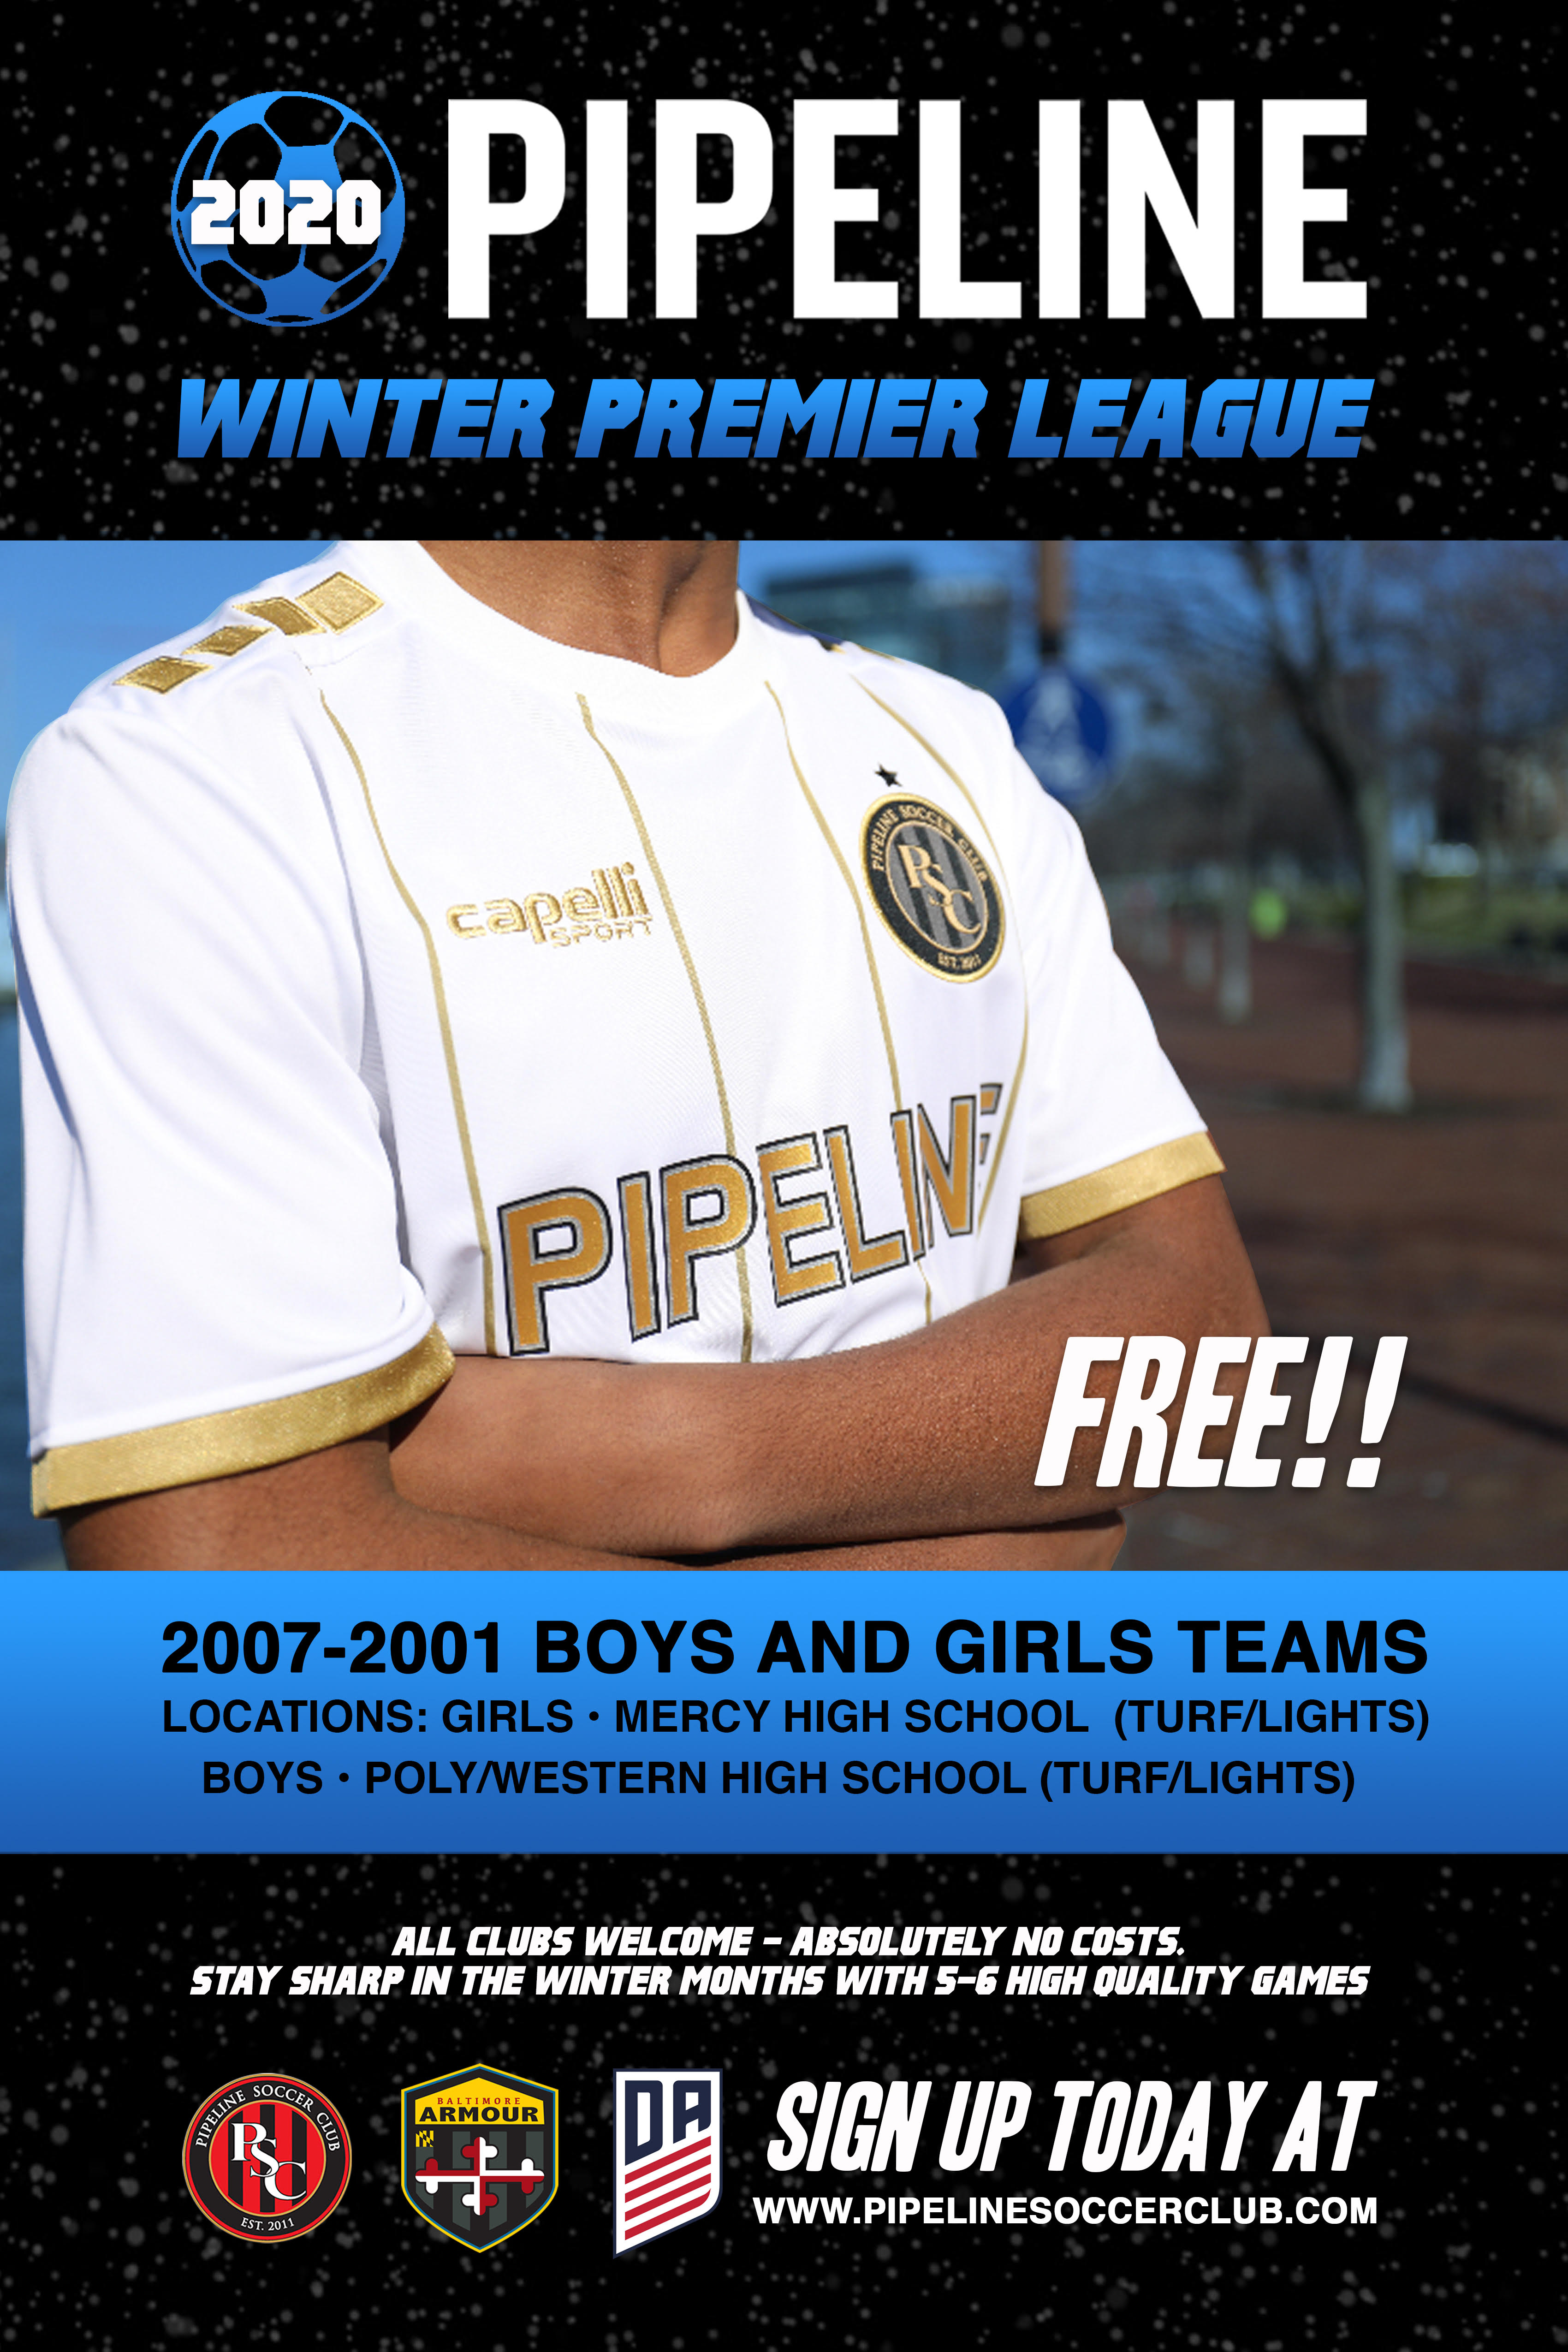 WINTER LEAGUE AVAILABLE AUGUST 1ST